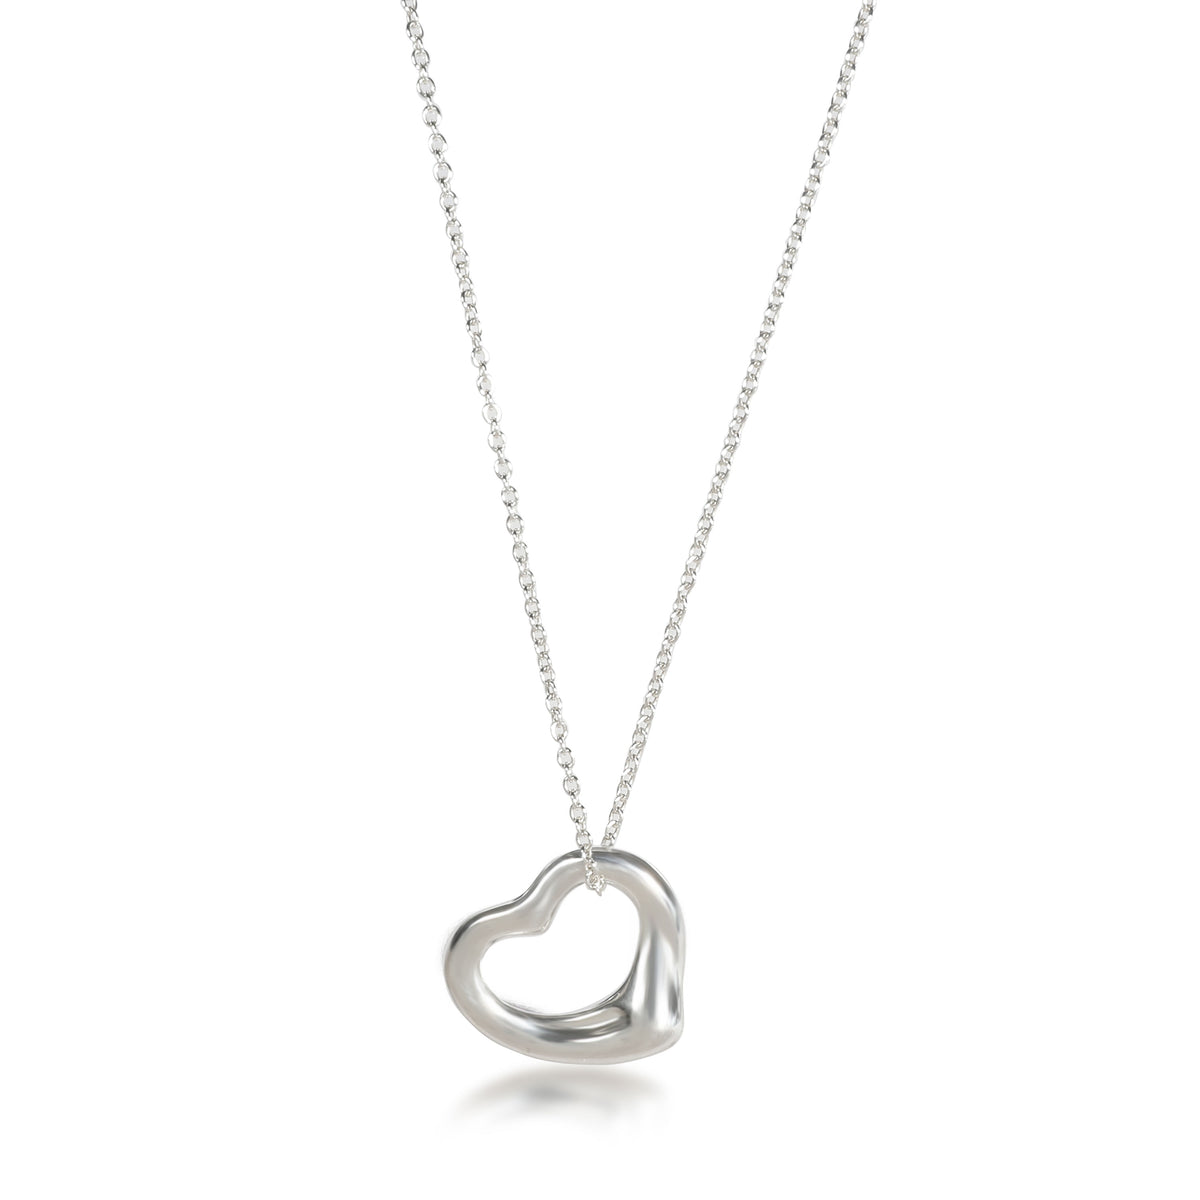 Tiffany & Co. Elsa Peretti Open Heart Necklace in  Sterling Silver